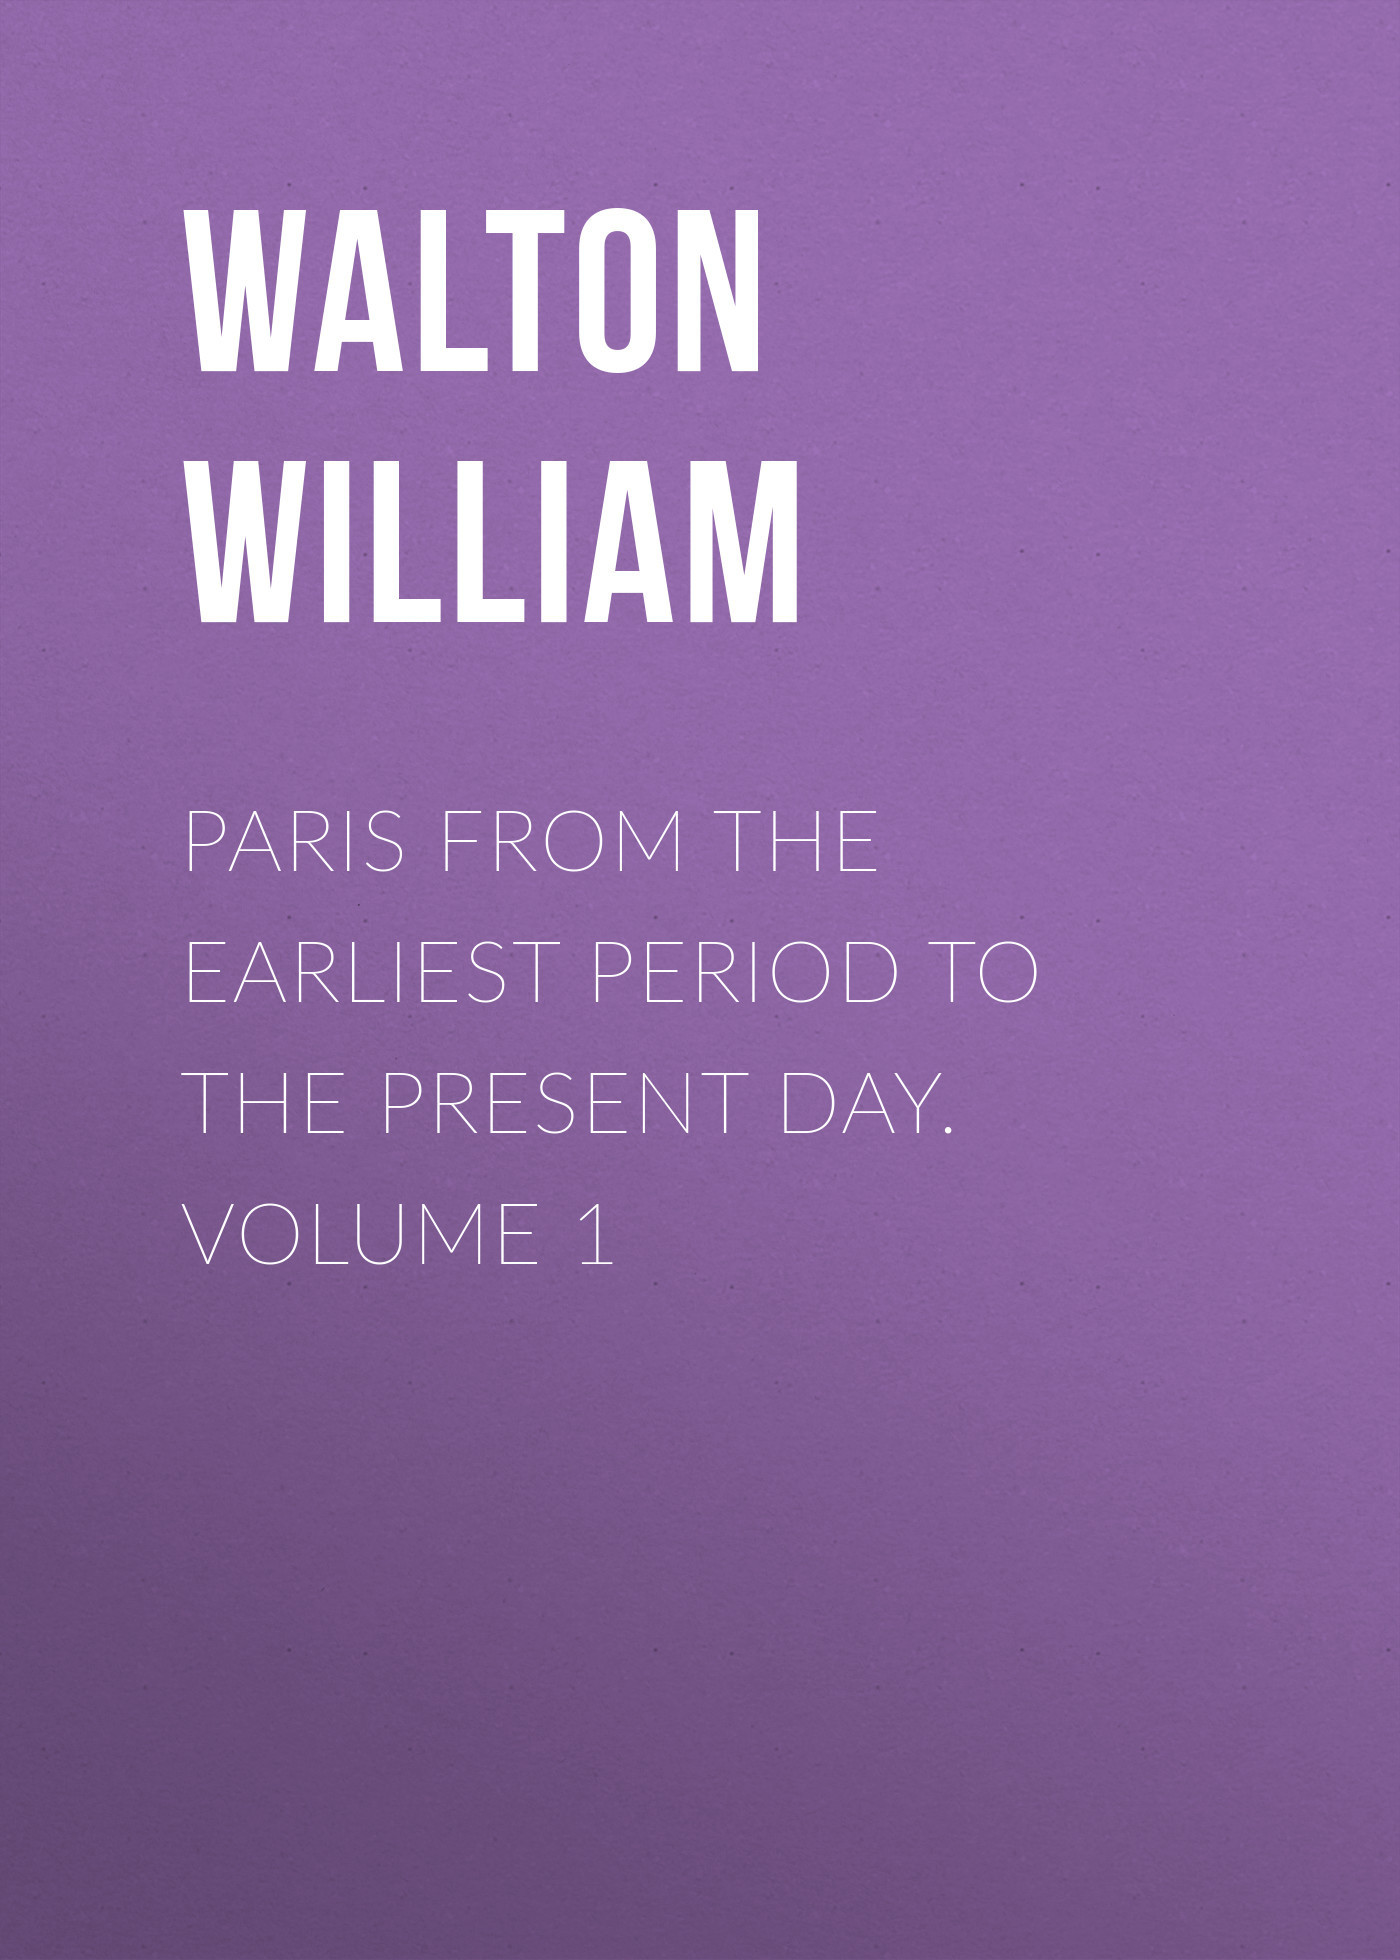 Walton William Paris from the Earliest Period to the Present Day. Volume 1 lollapalooza paris 2018 2 day pass